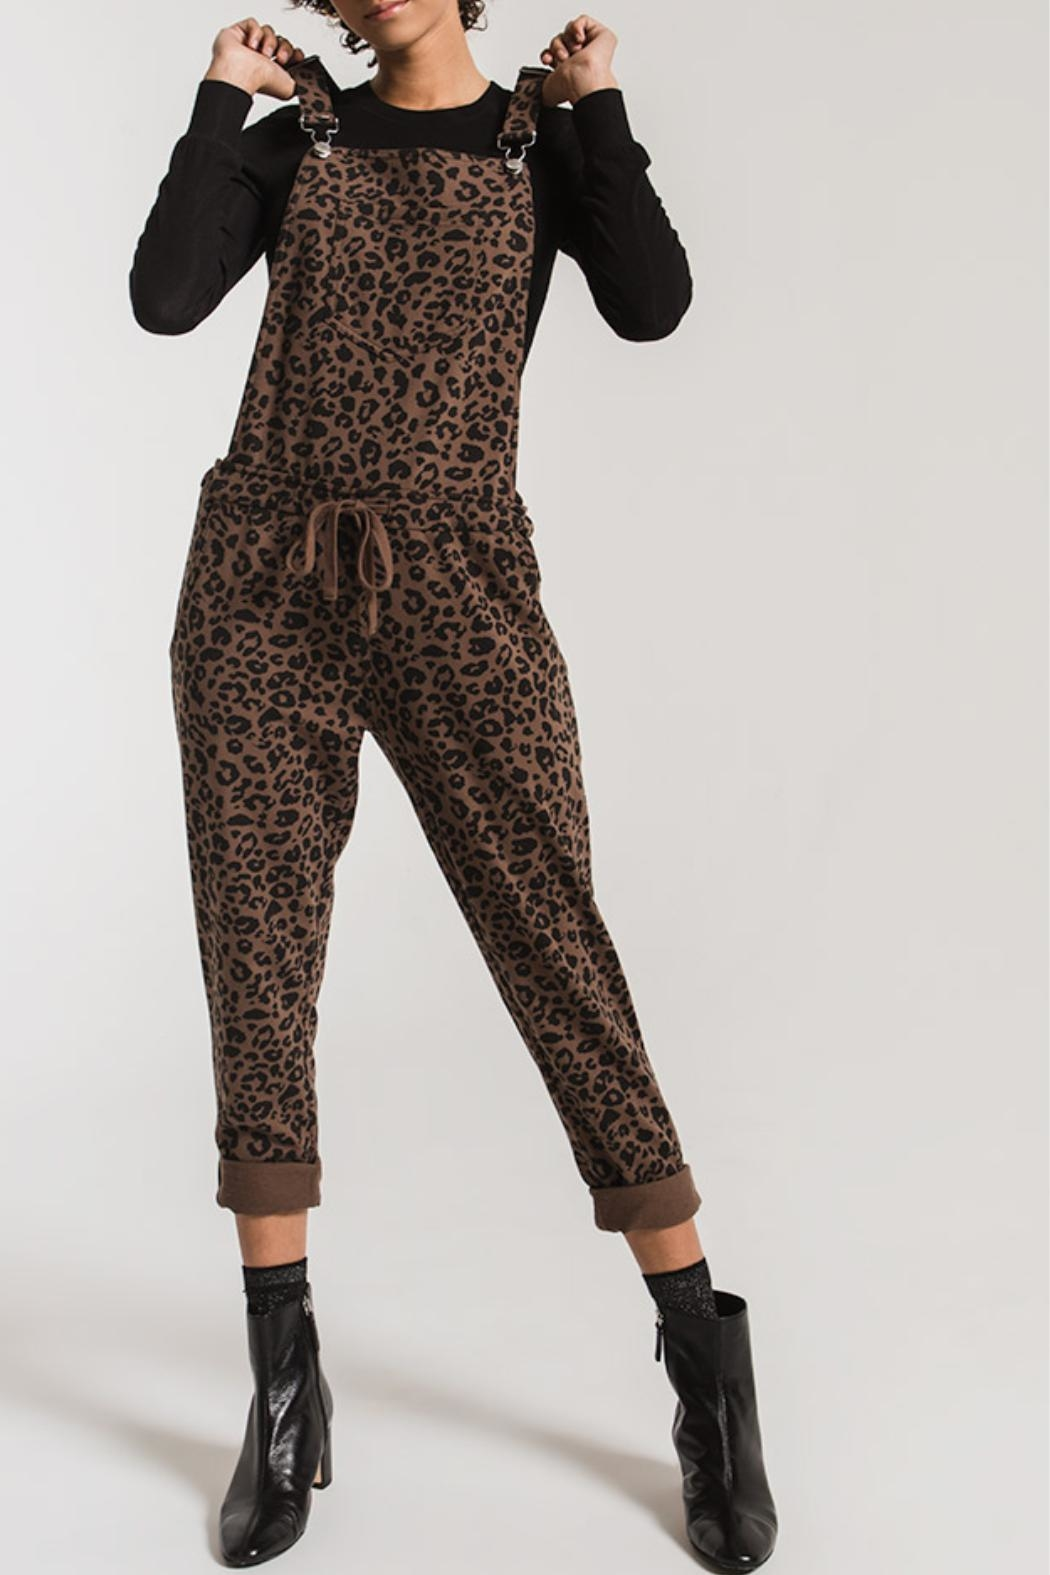 z supply The Leopard Overall - Front Cropped Image